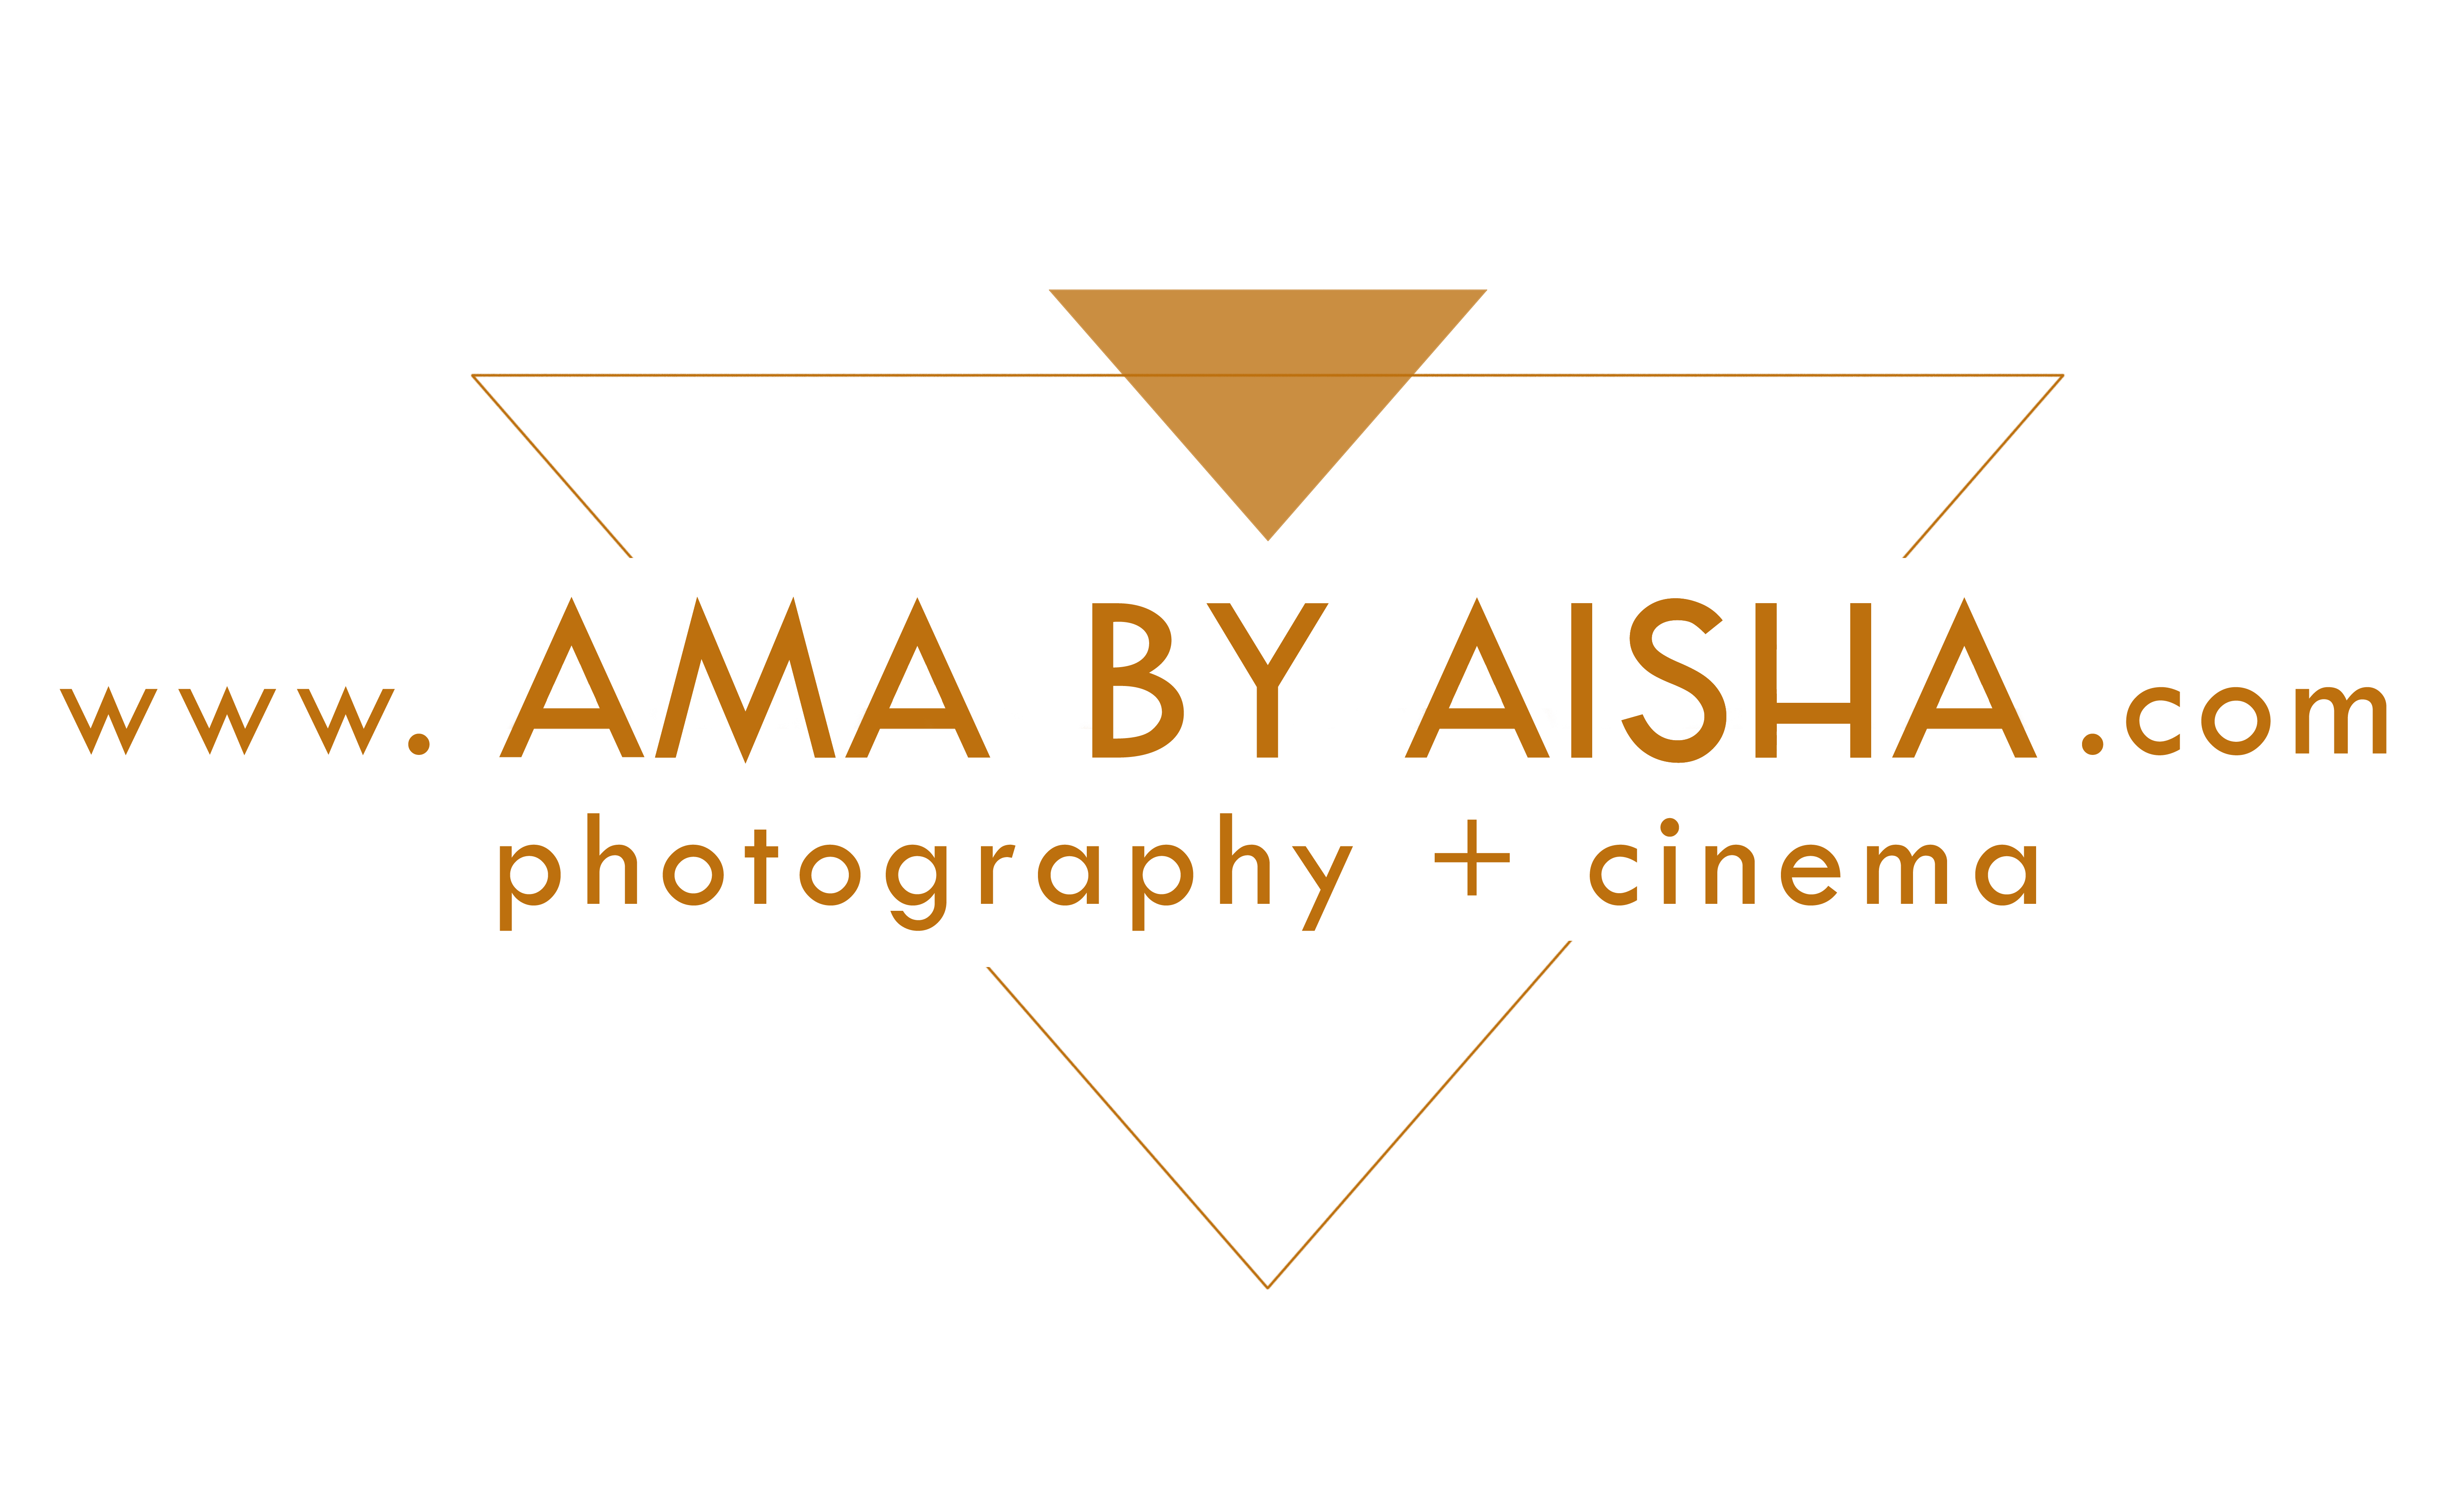 AMA by Aisha - Houston Photography, Videography